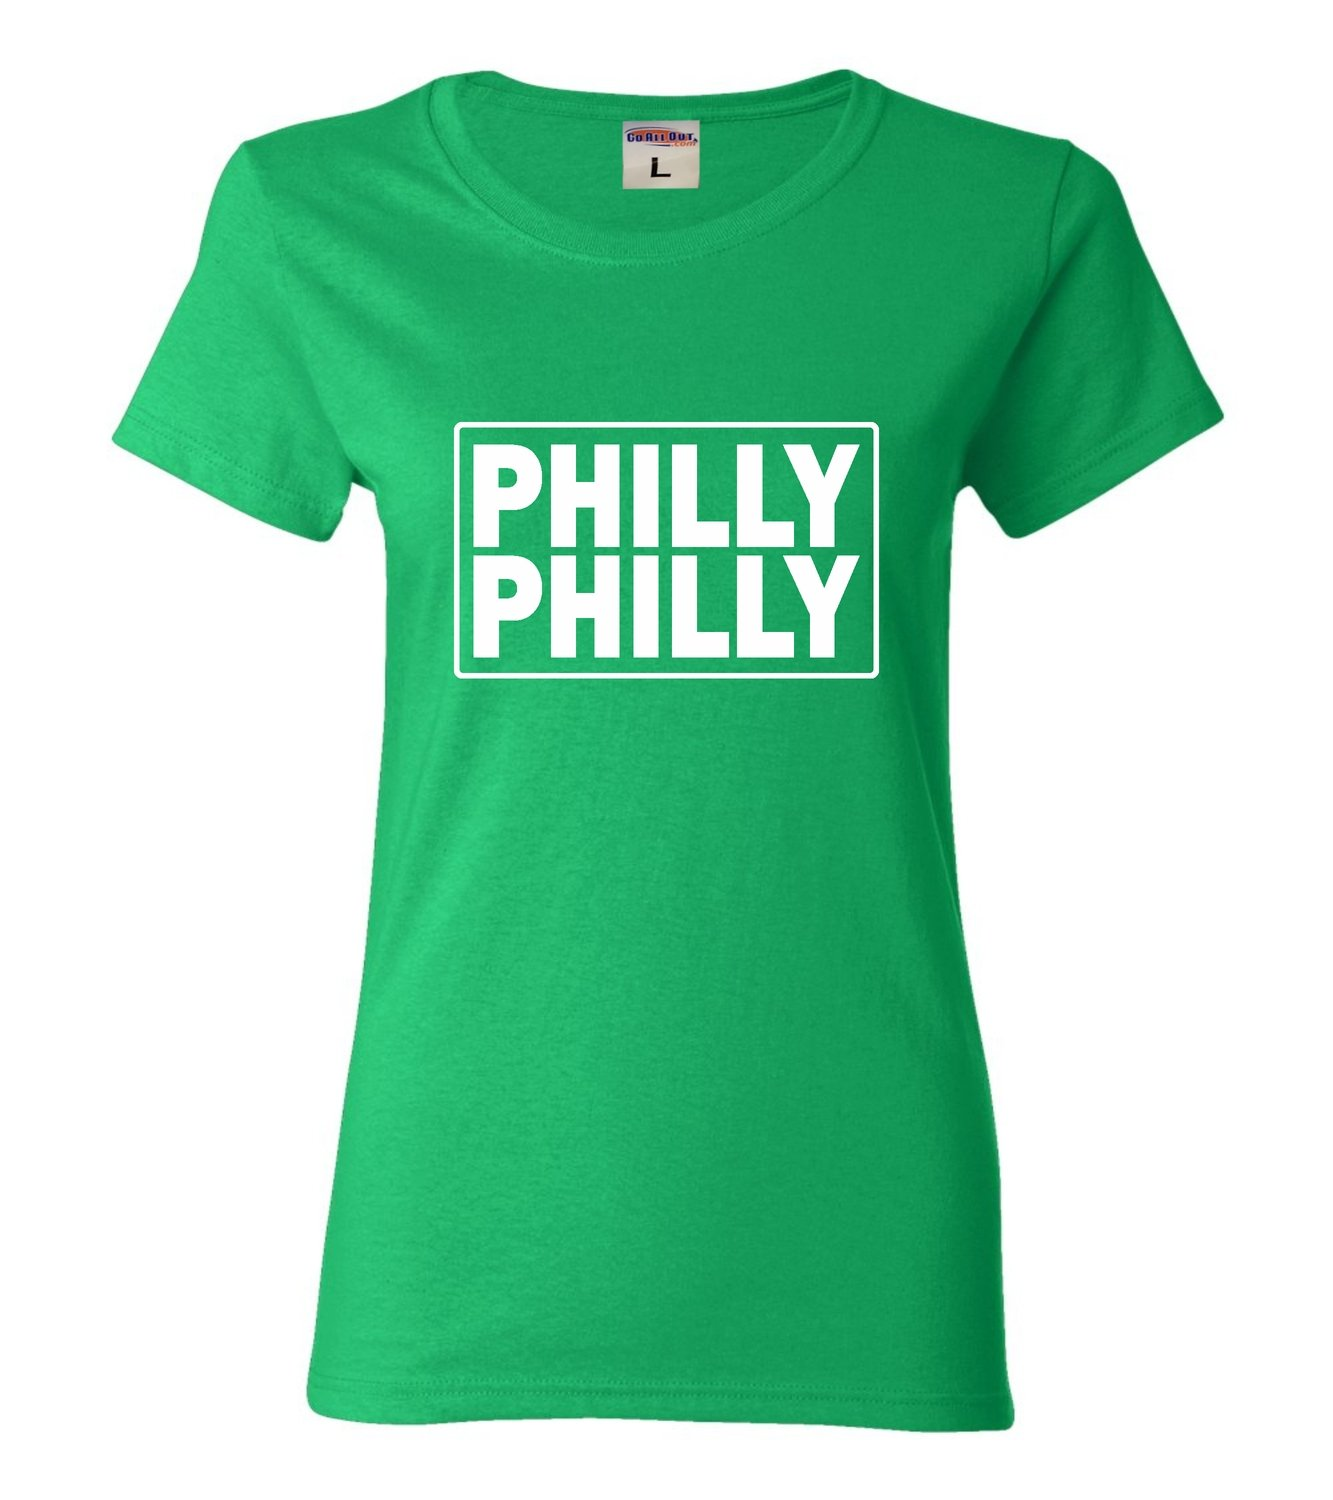 Philly Philly Shirts